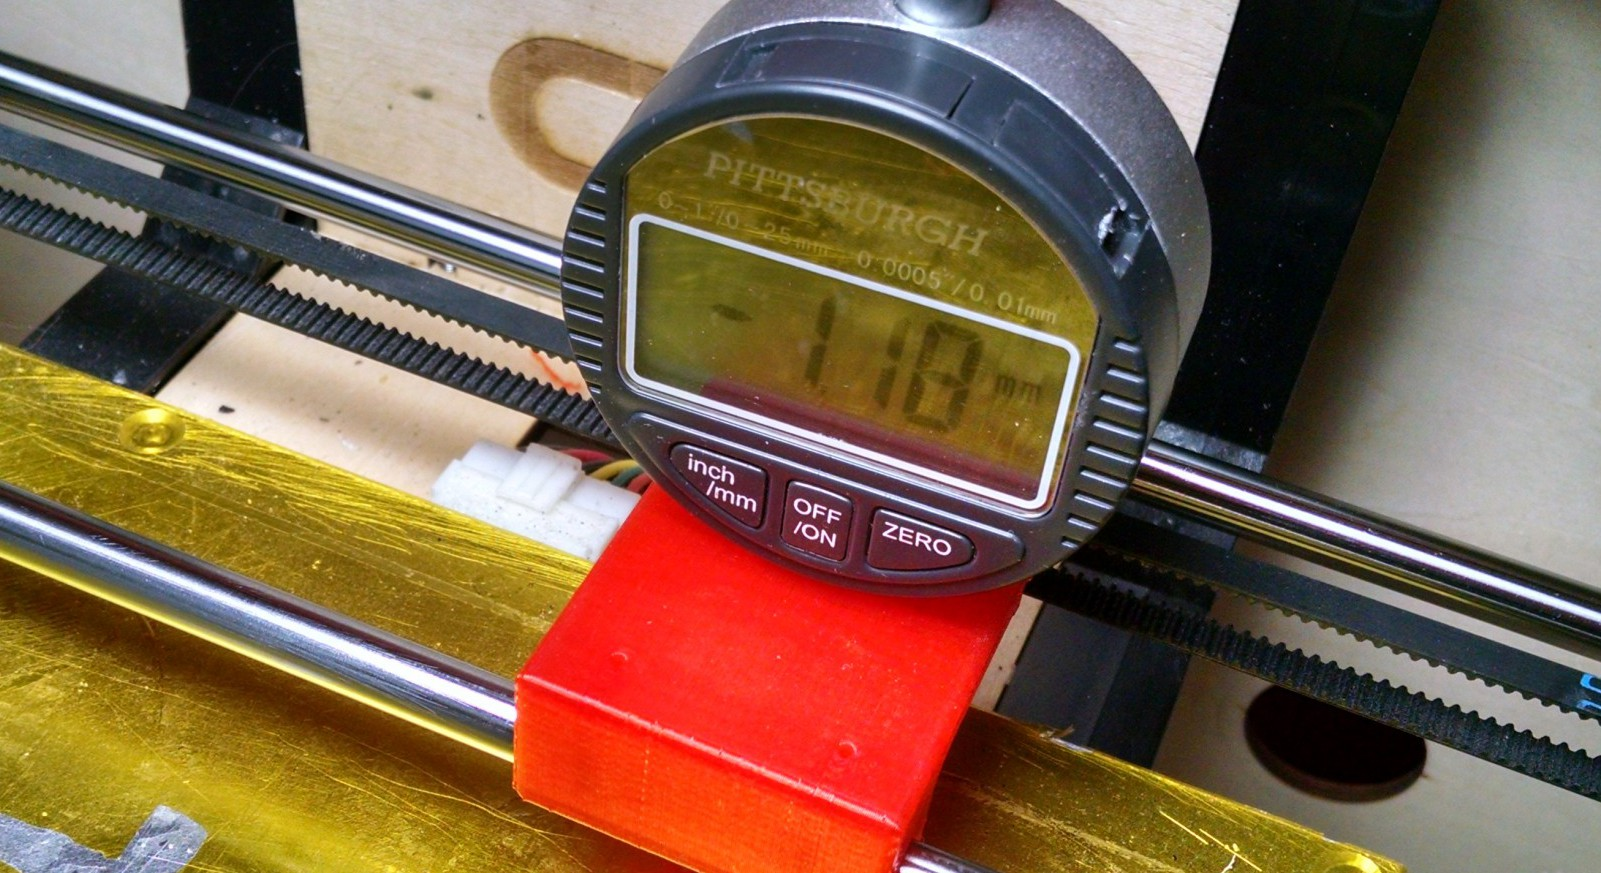 Digital gauge sitting on a 3D printed Jig for leveling the bed of a 3D printer